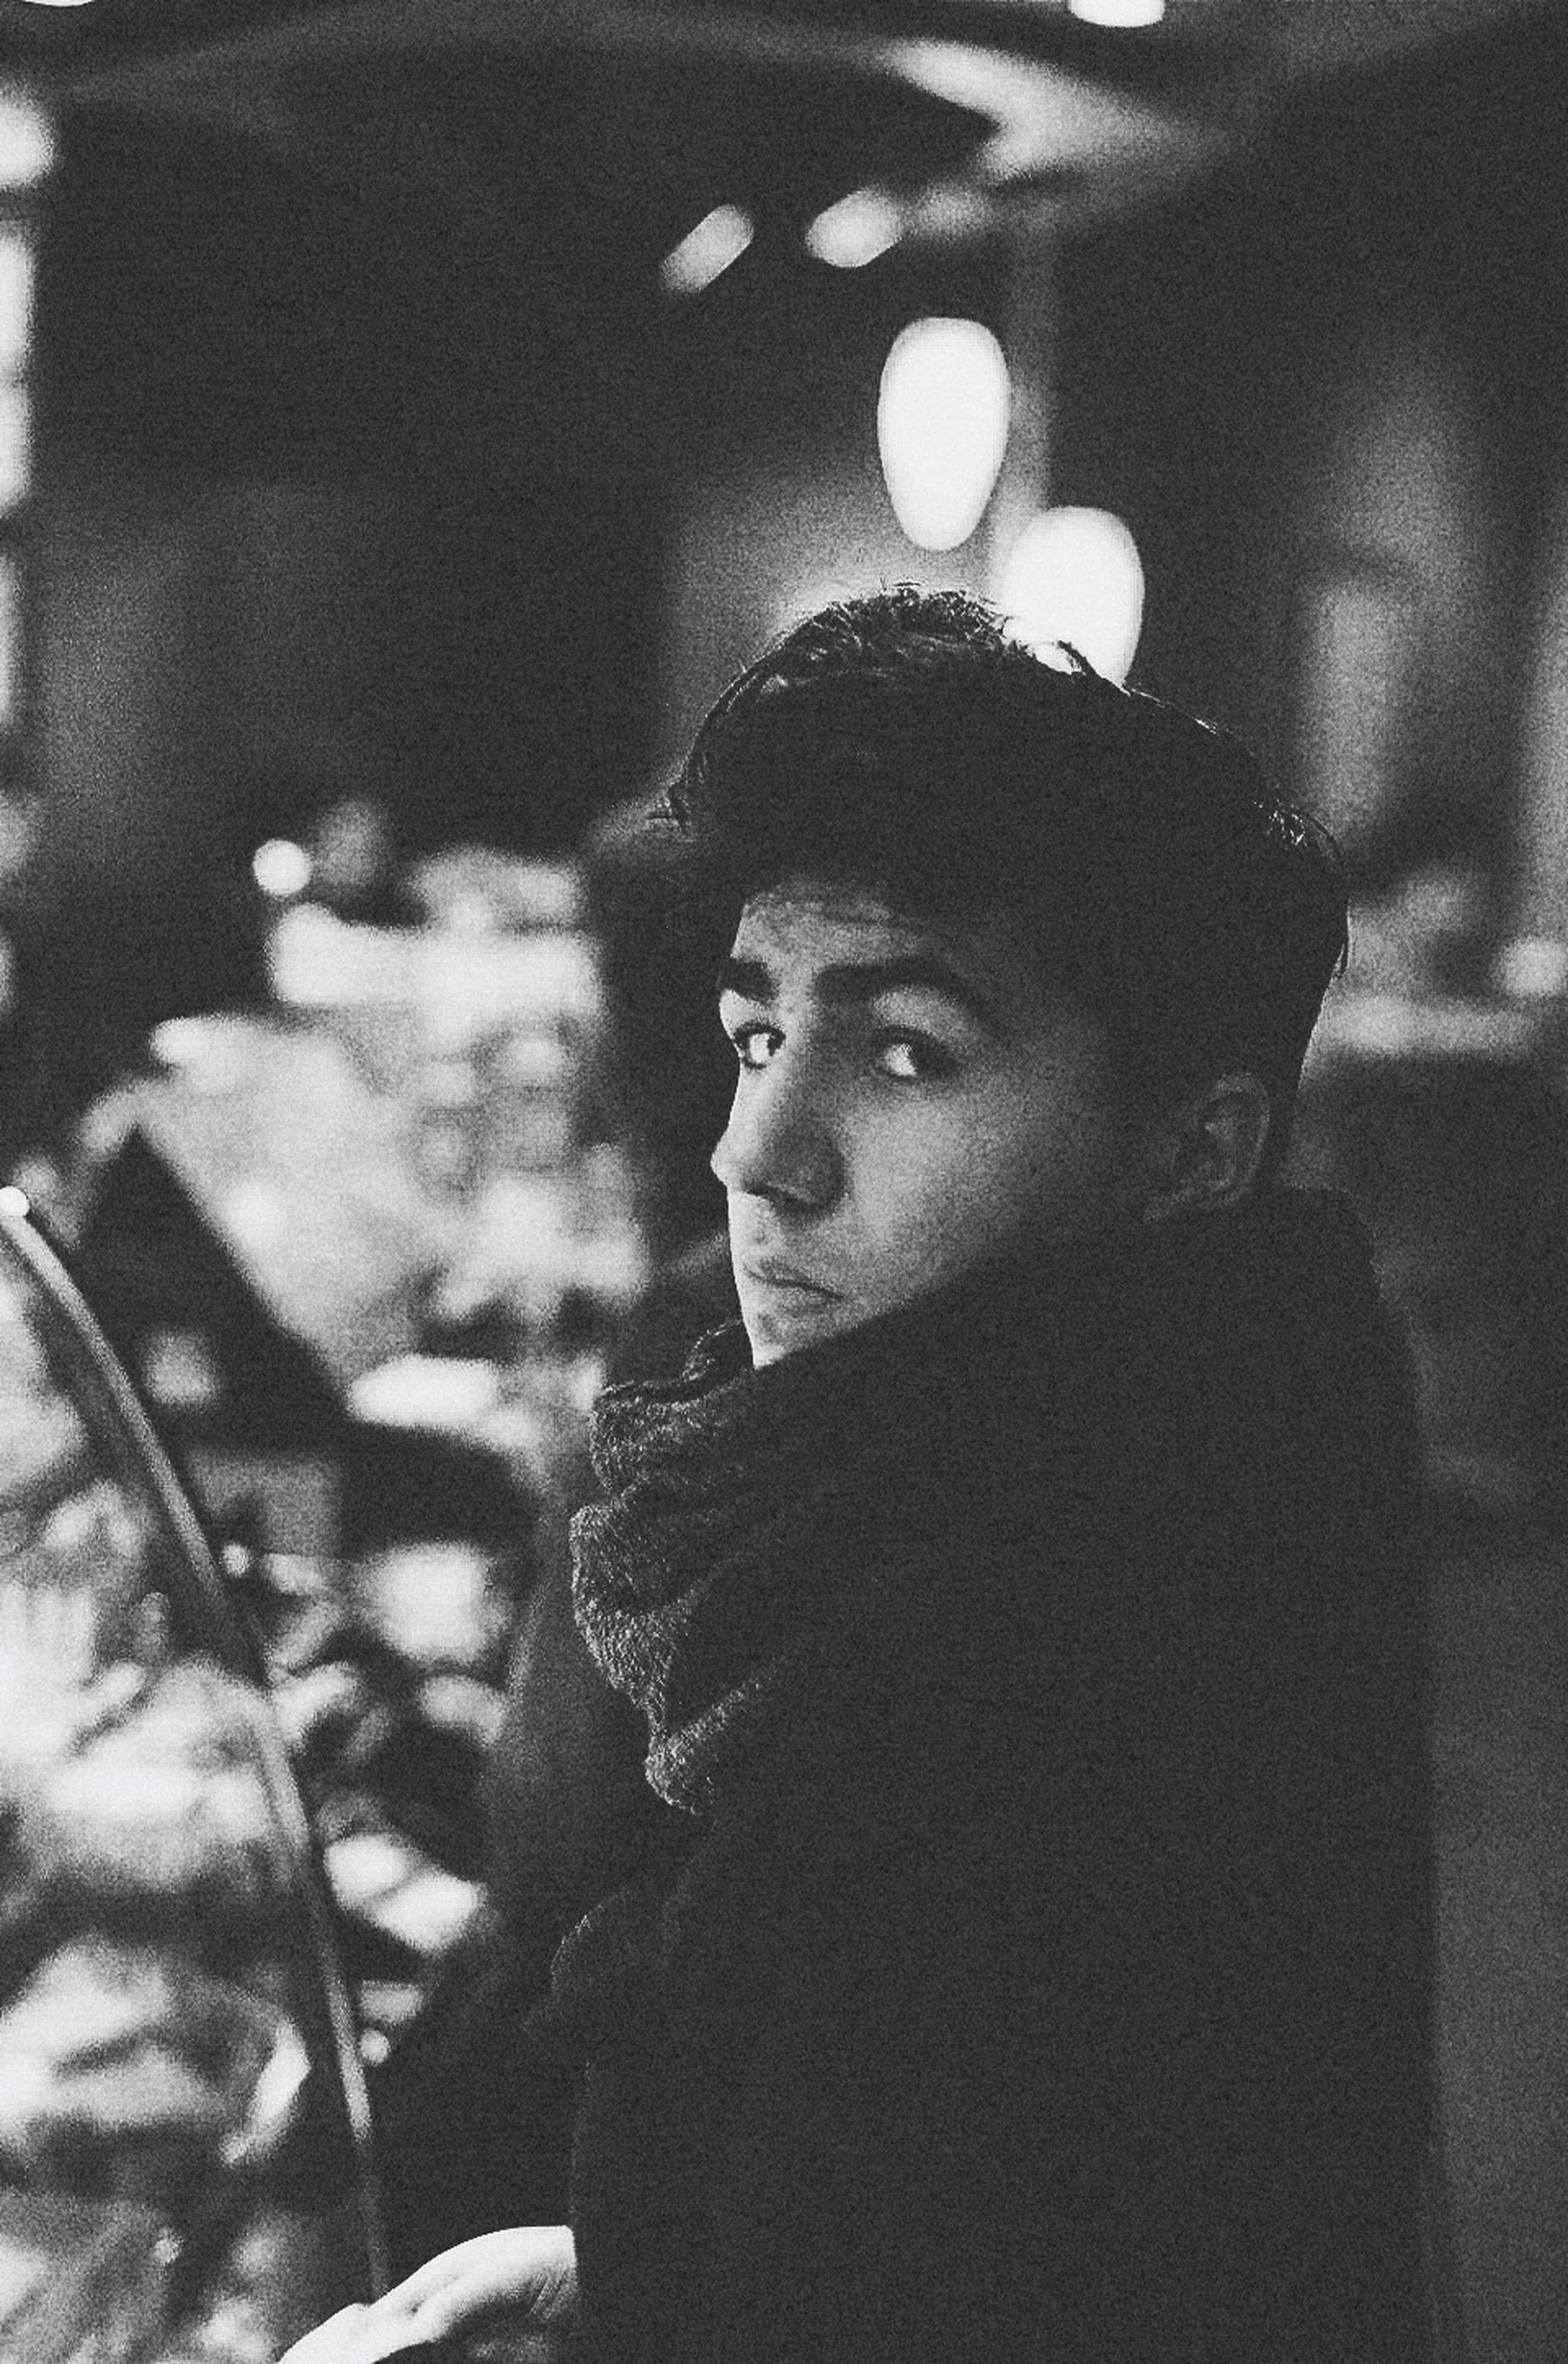 headshot, lifestyles, leisure activity, person, indoors, focus on foreground, young men, portrait, looking at camera, front view, young adult, contemplation, head and shoulders, casual clothing, close-up, night, waist up